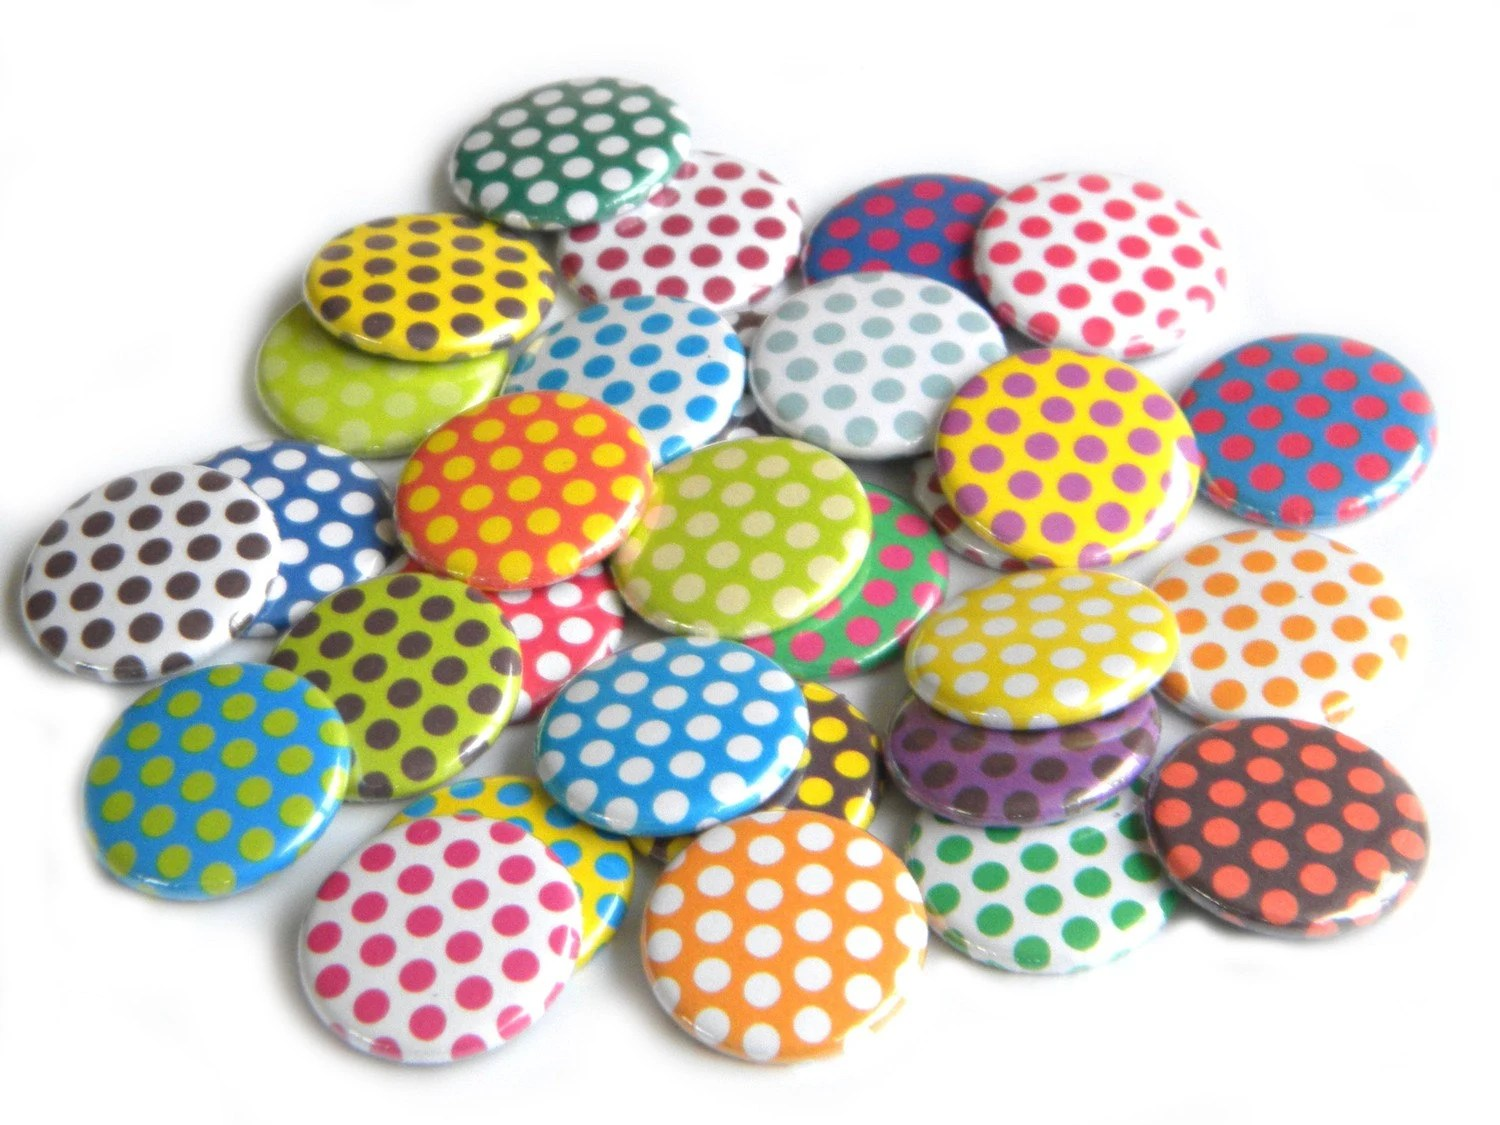 25 Assorted Polka Dot Flat Back Buttons